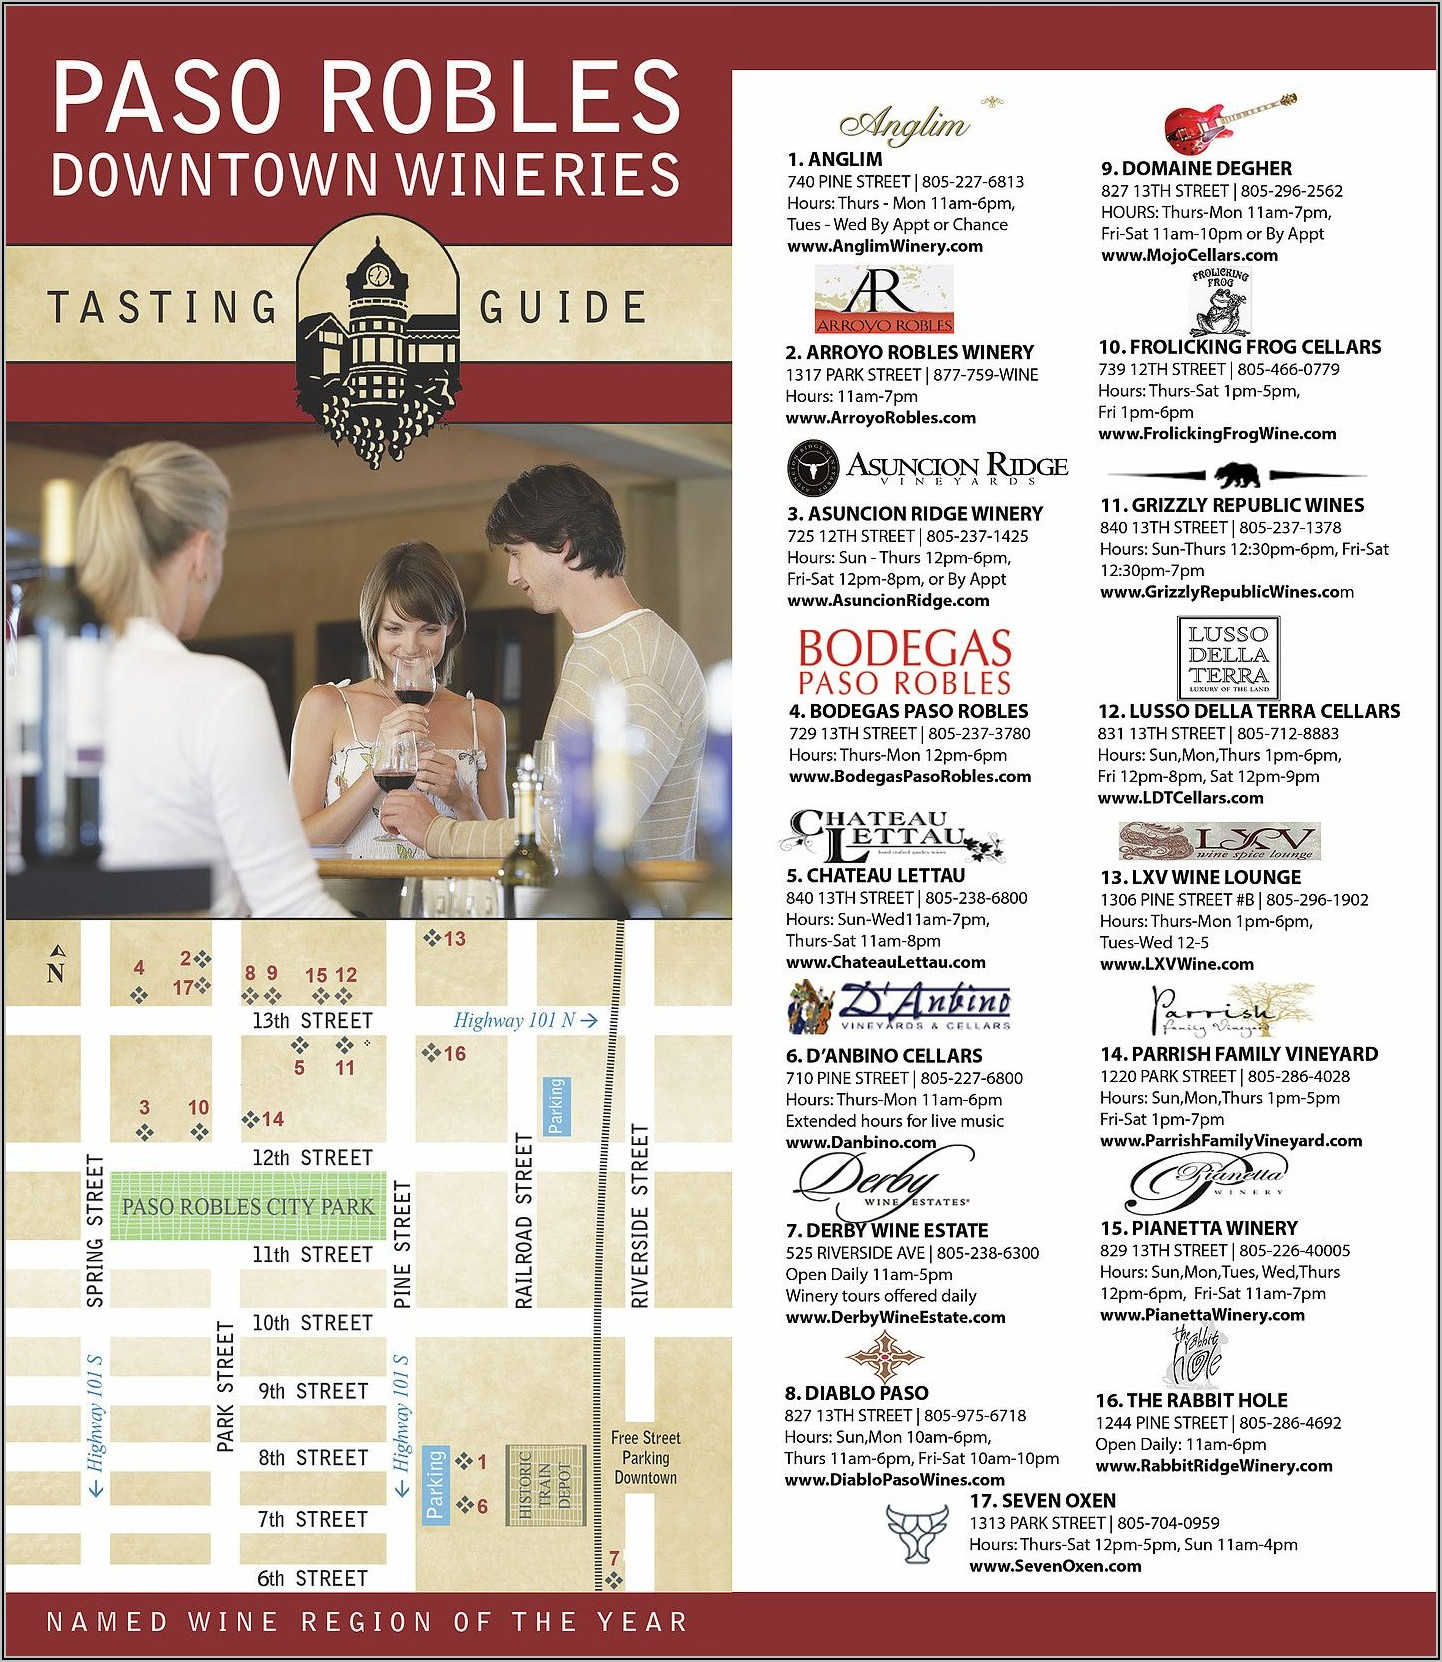 Paso Robles Downtown Wineries Map